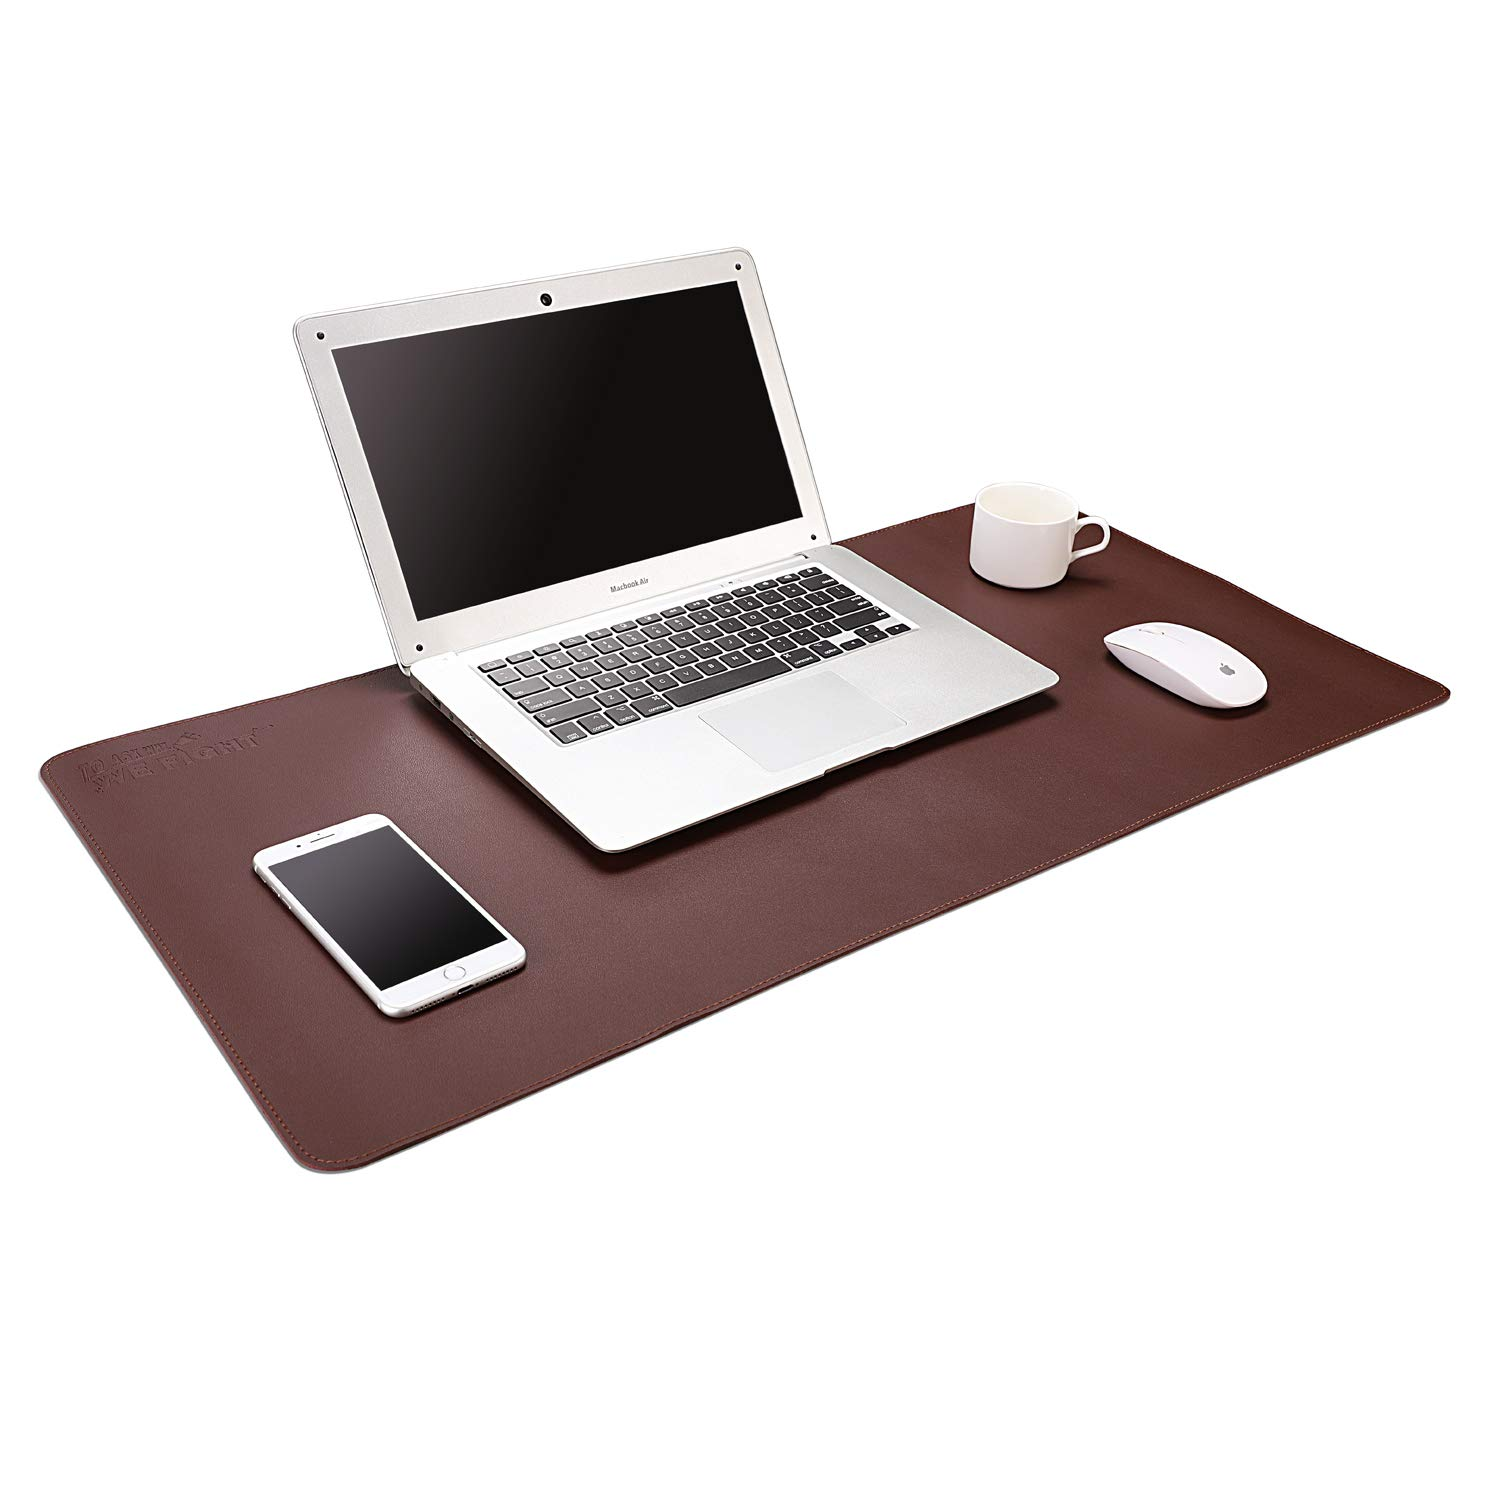 """ACSTEP Office Desk Pad Ultrathin Desk Pad Protector Waterproof PU Leather Desk Blotter Pad Desk Writing Mat Dark Brown for Office,Home 31.2""""x16"""""""